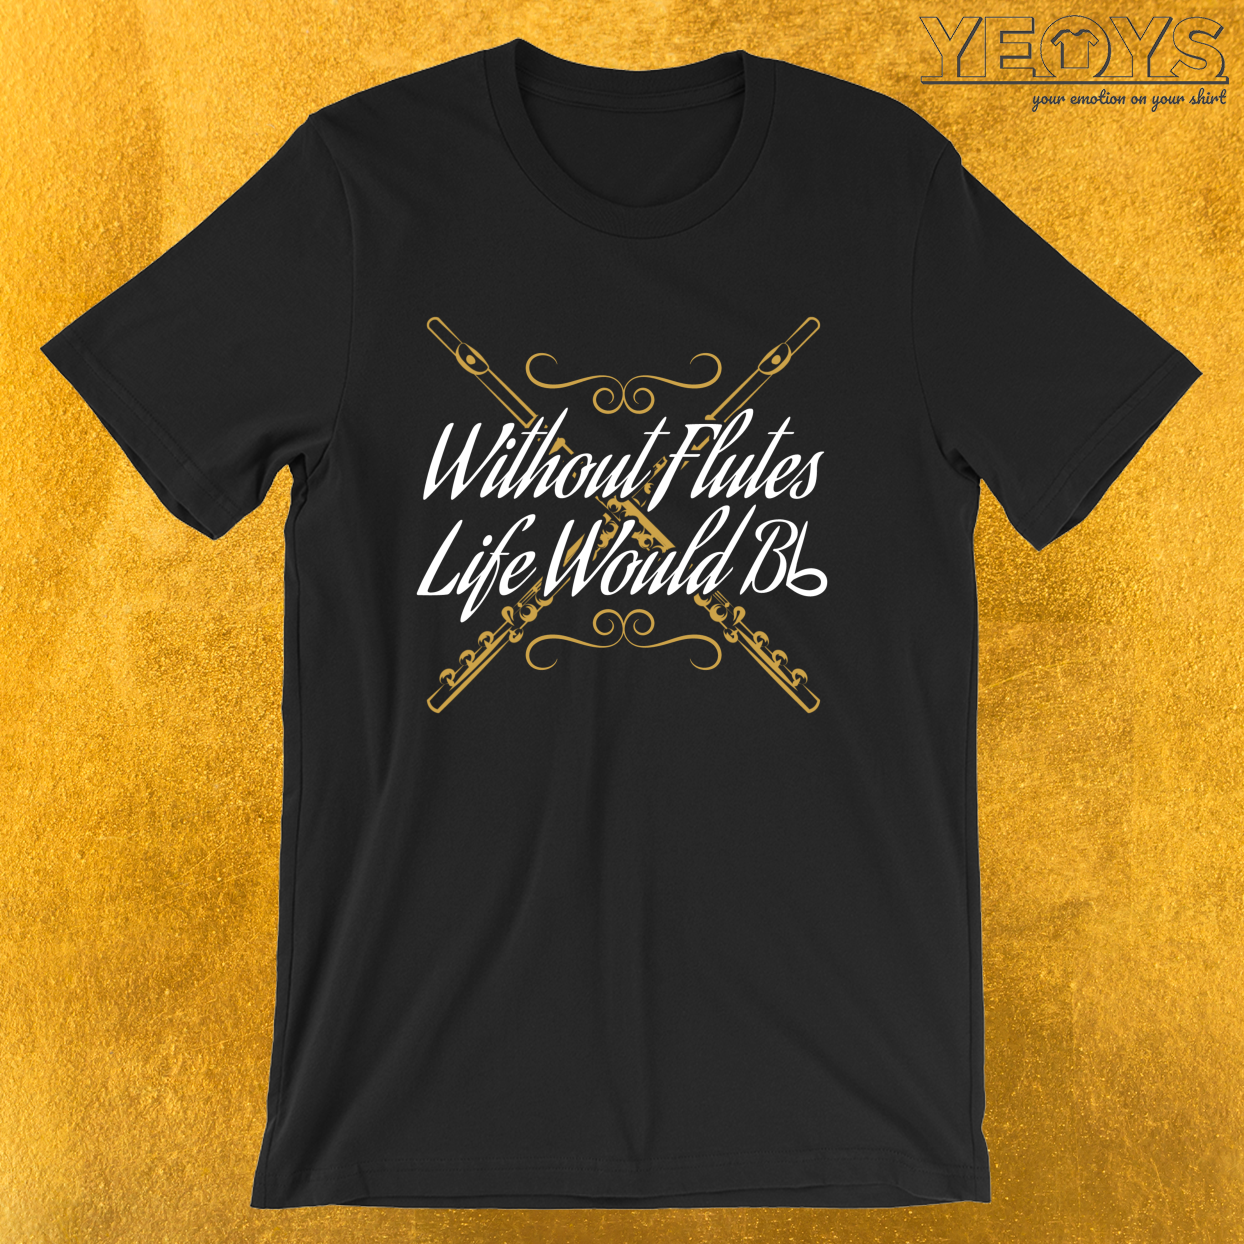 Without Flutes Life Would B Flat – Funny Music Quotes Tee